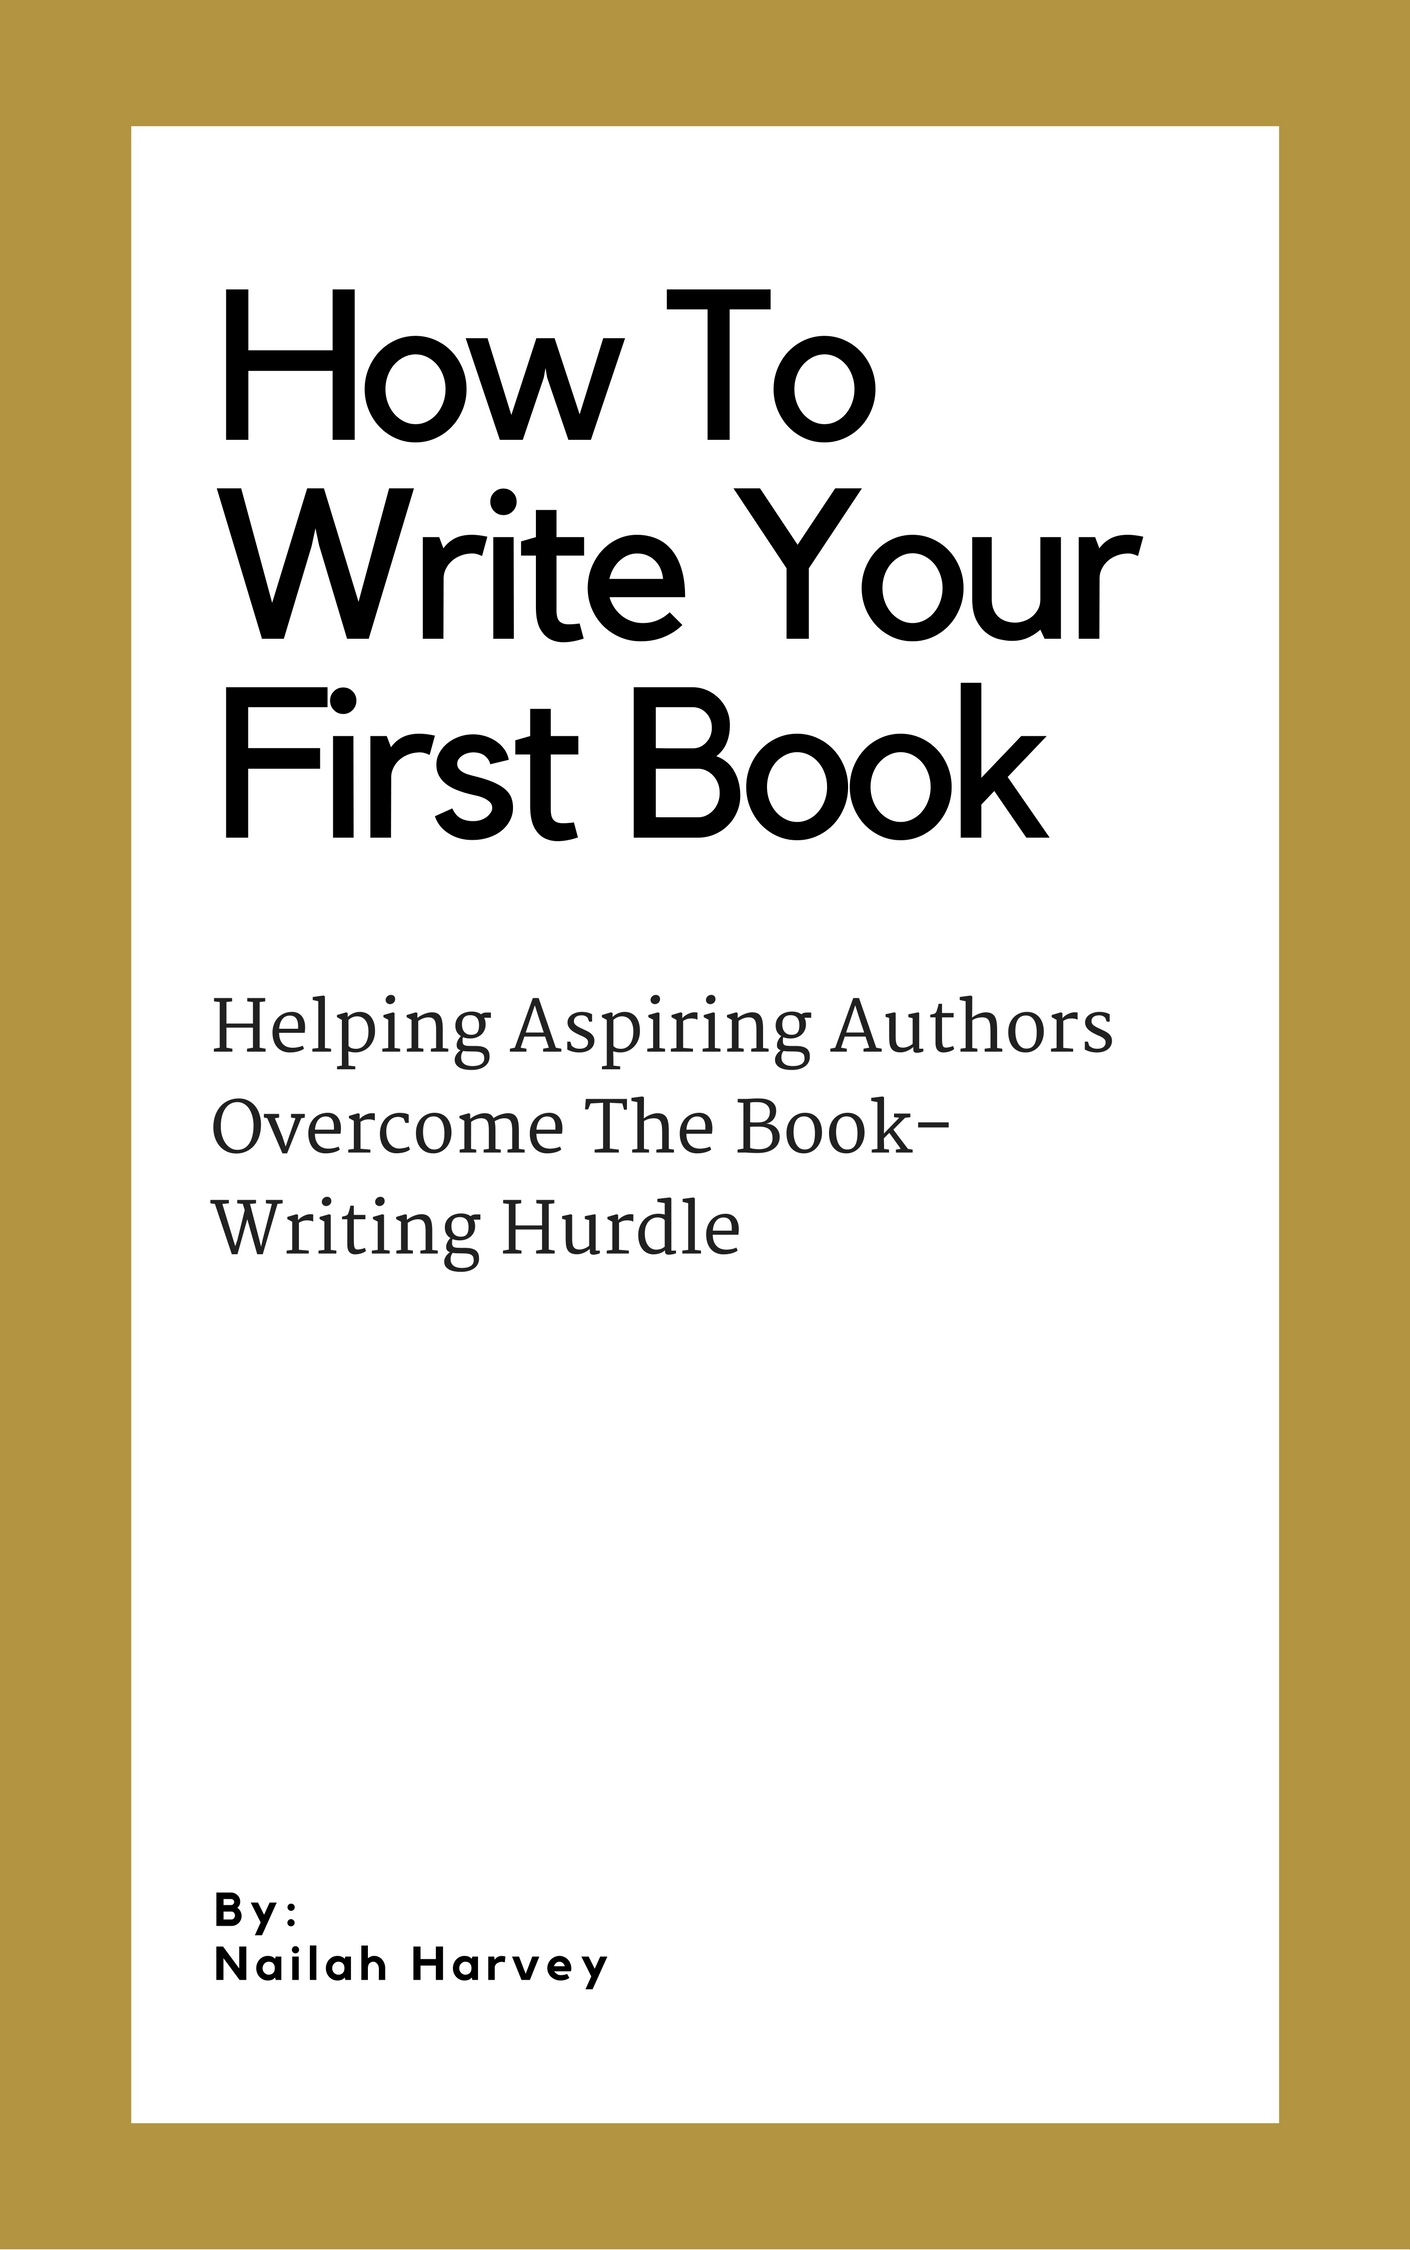 How To Write Your First Book_Helping Aspiring Authors Overcome the Book-Writing Hurdle by Nailah Harvey